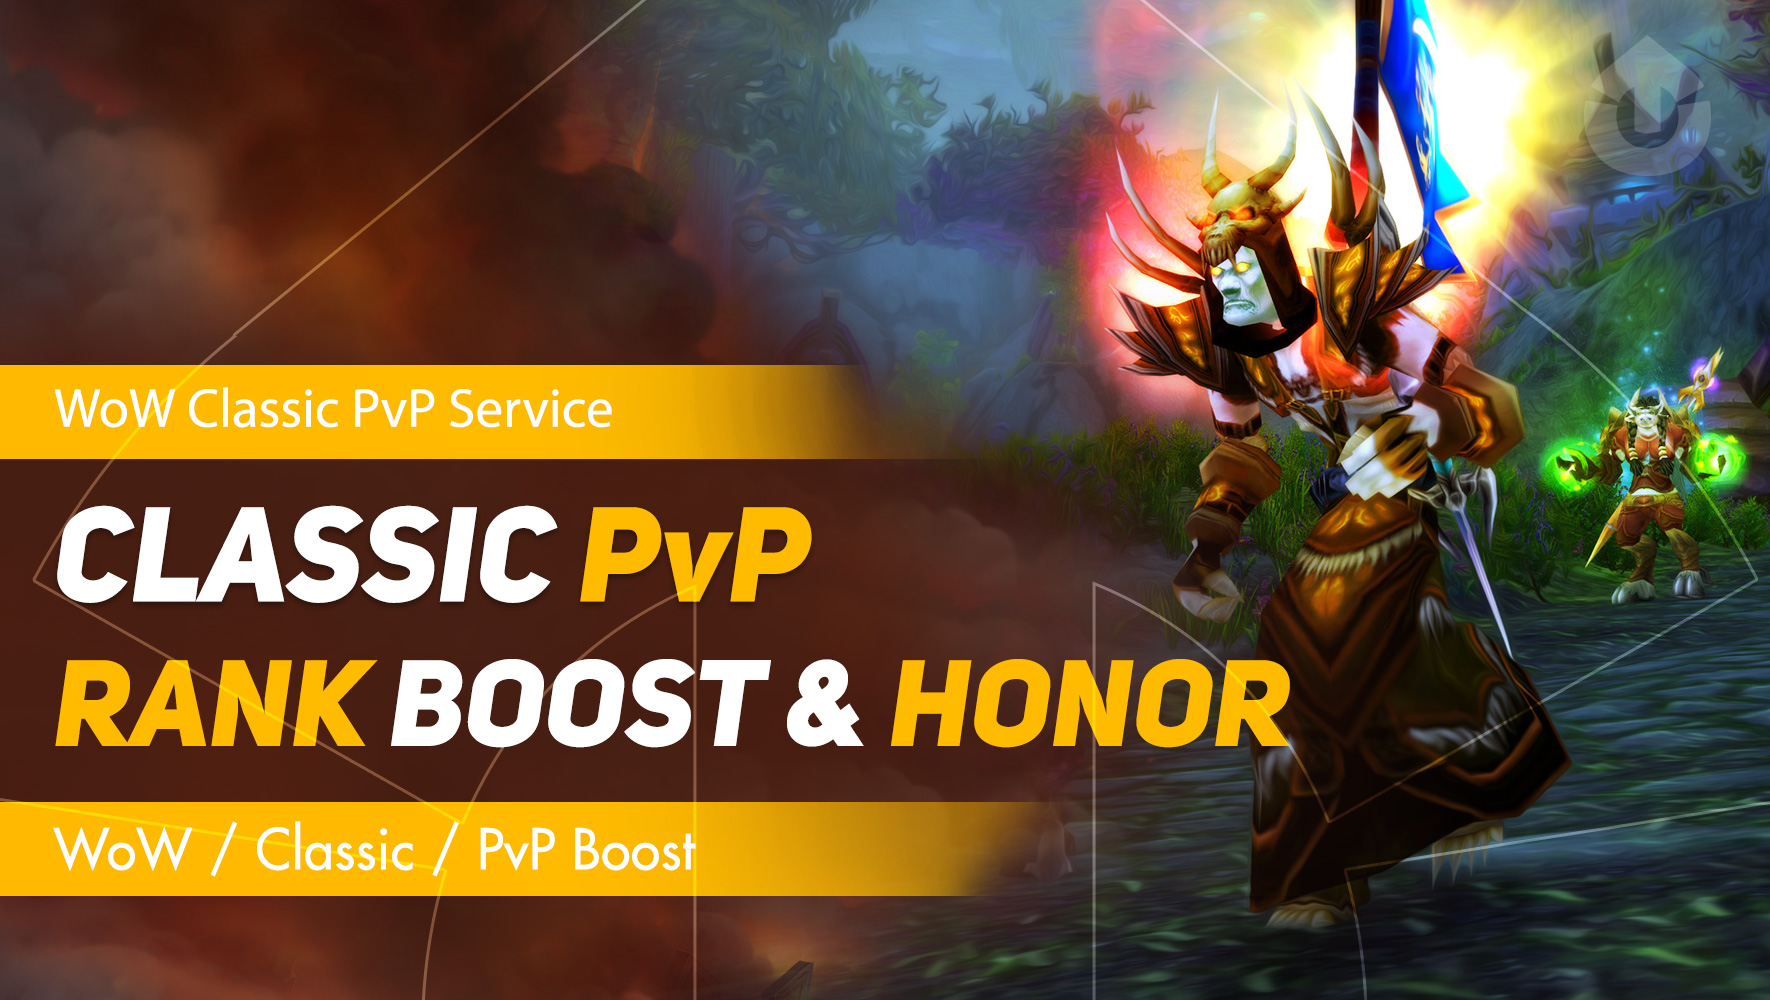 WoW Classic PvP | Rank Boost GBD - e2p.com